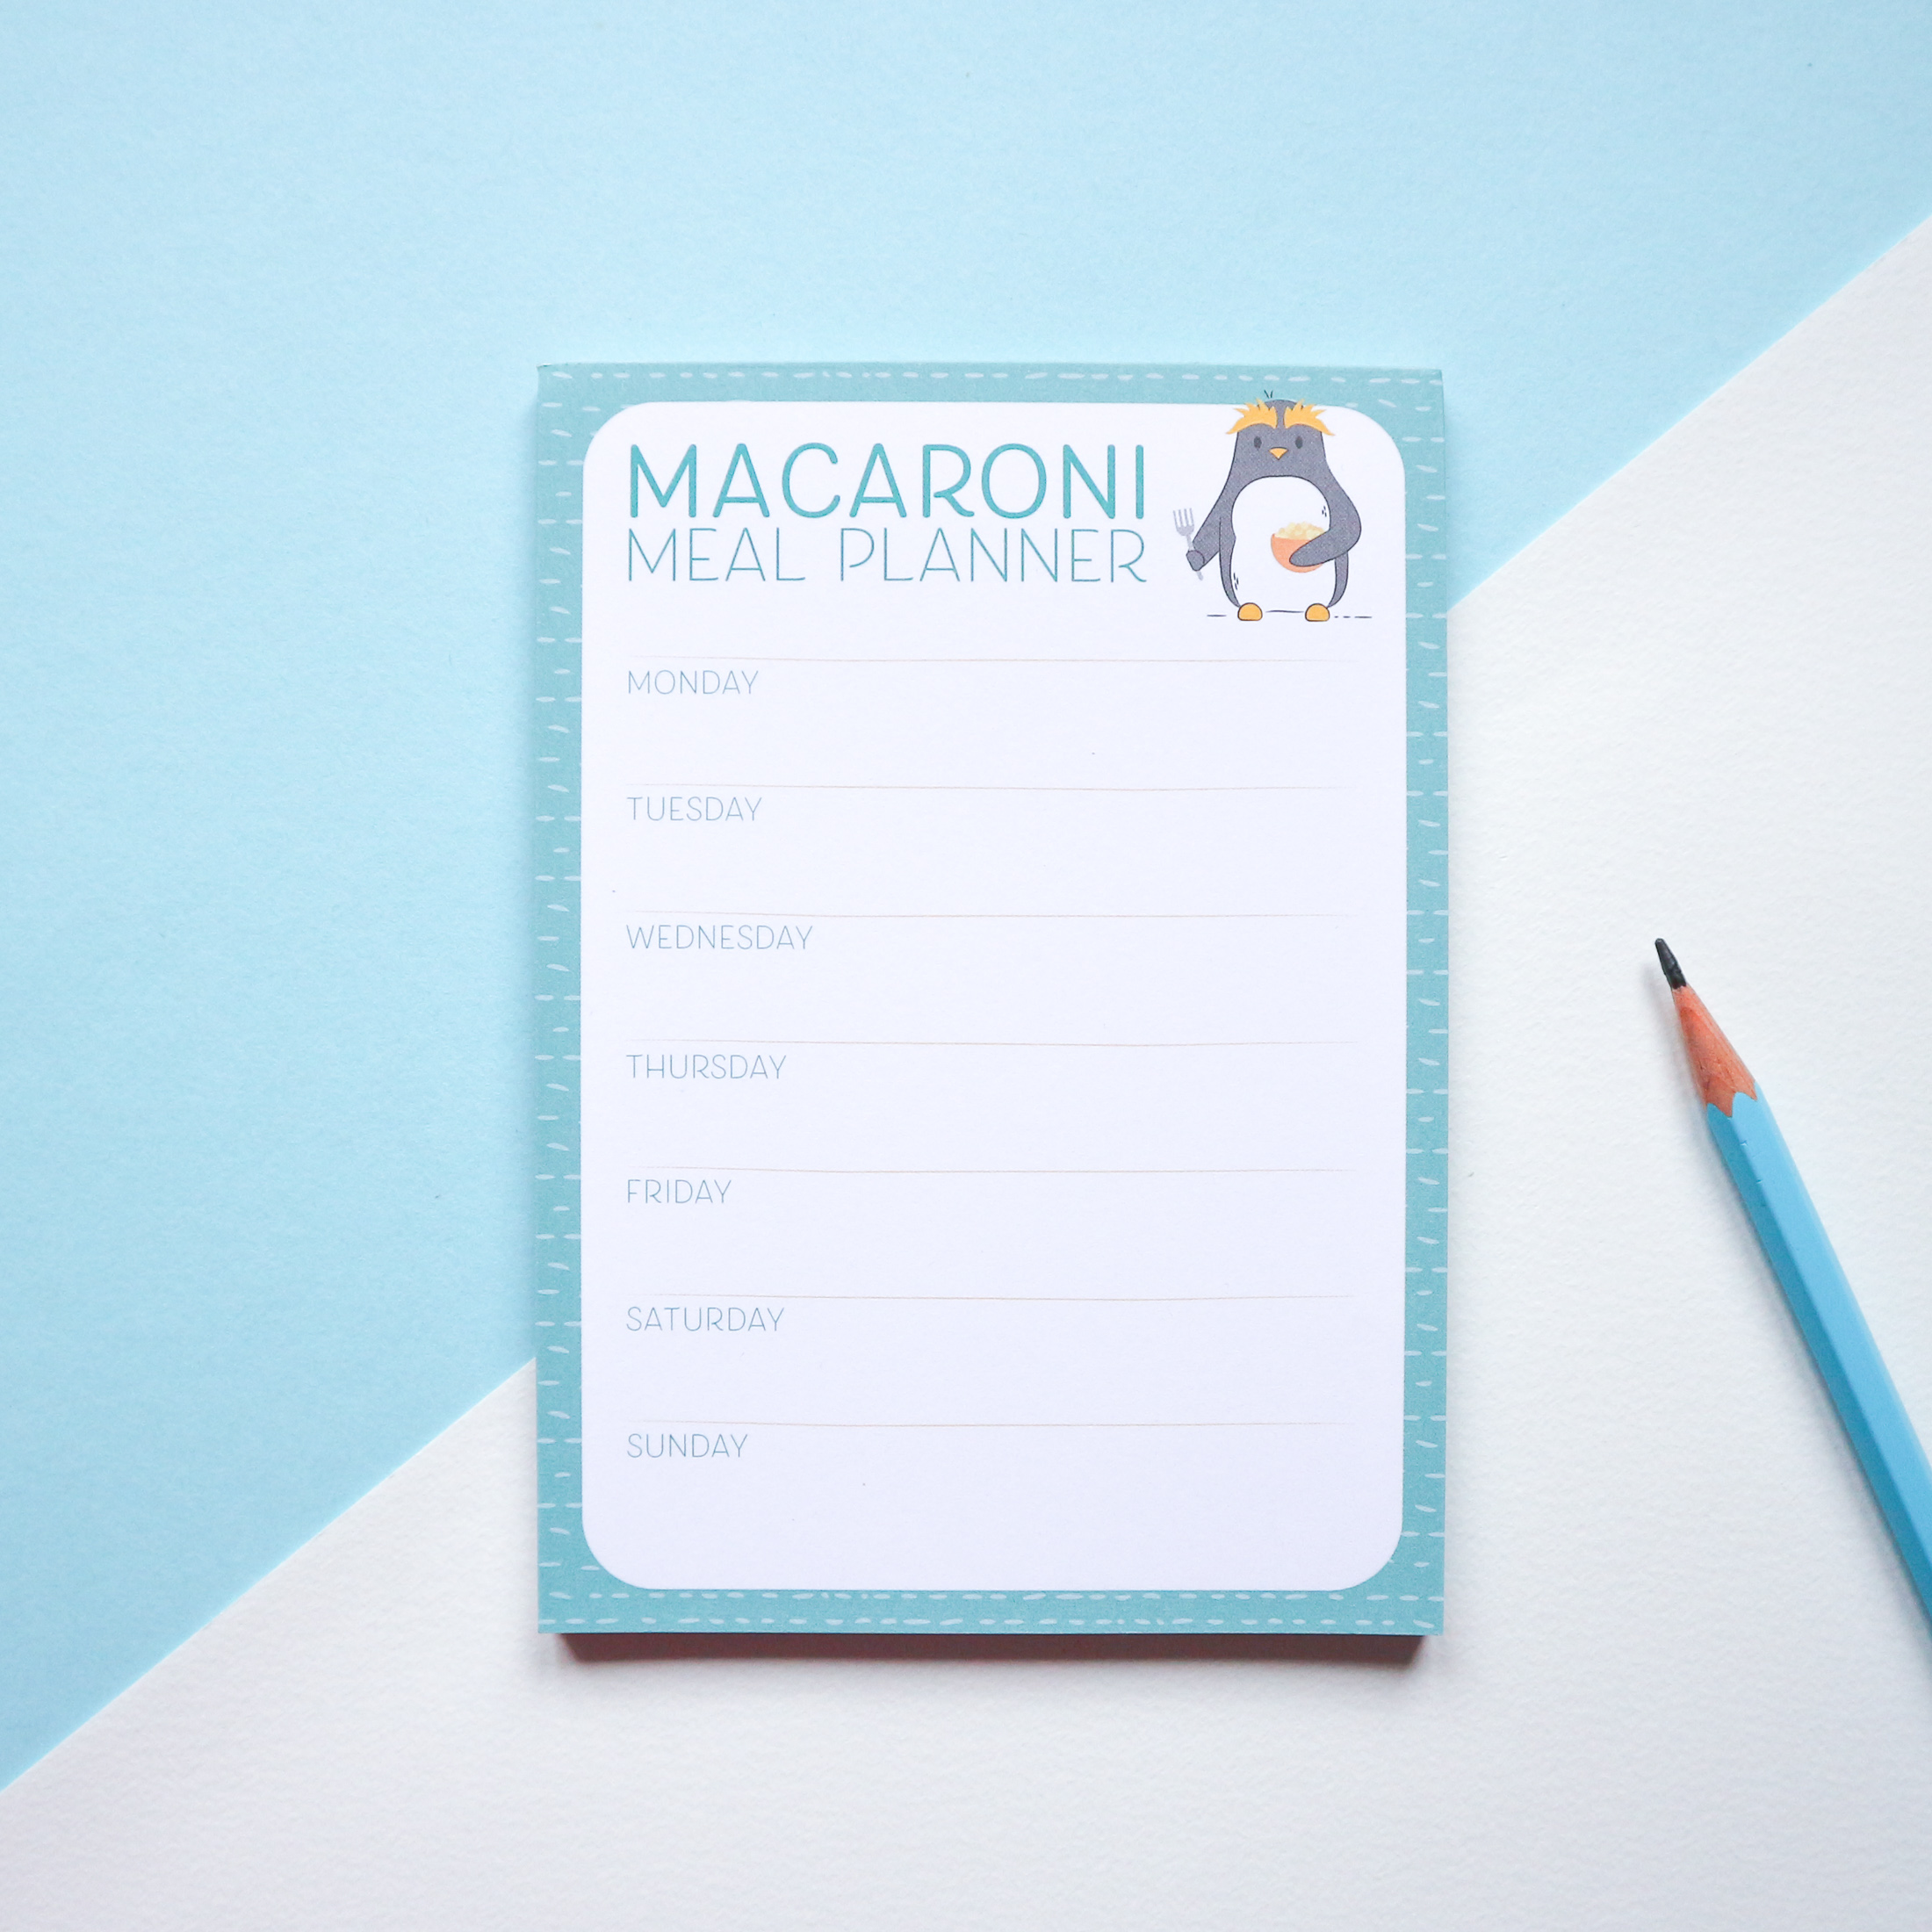 Macaroni Meal Planner Notepad with an illustration of a Penguin eating a bowl of macaroni. The notepad is styled with a blue pencil and sitting against a blue and white background.